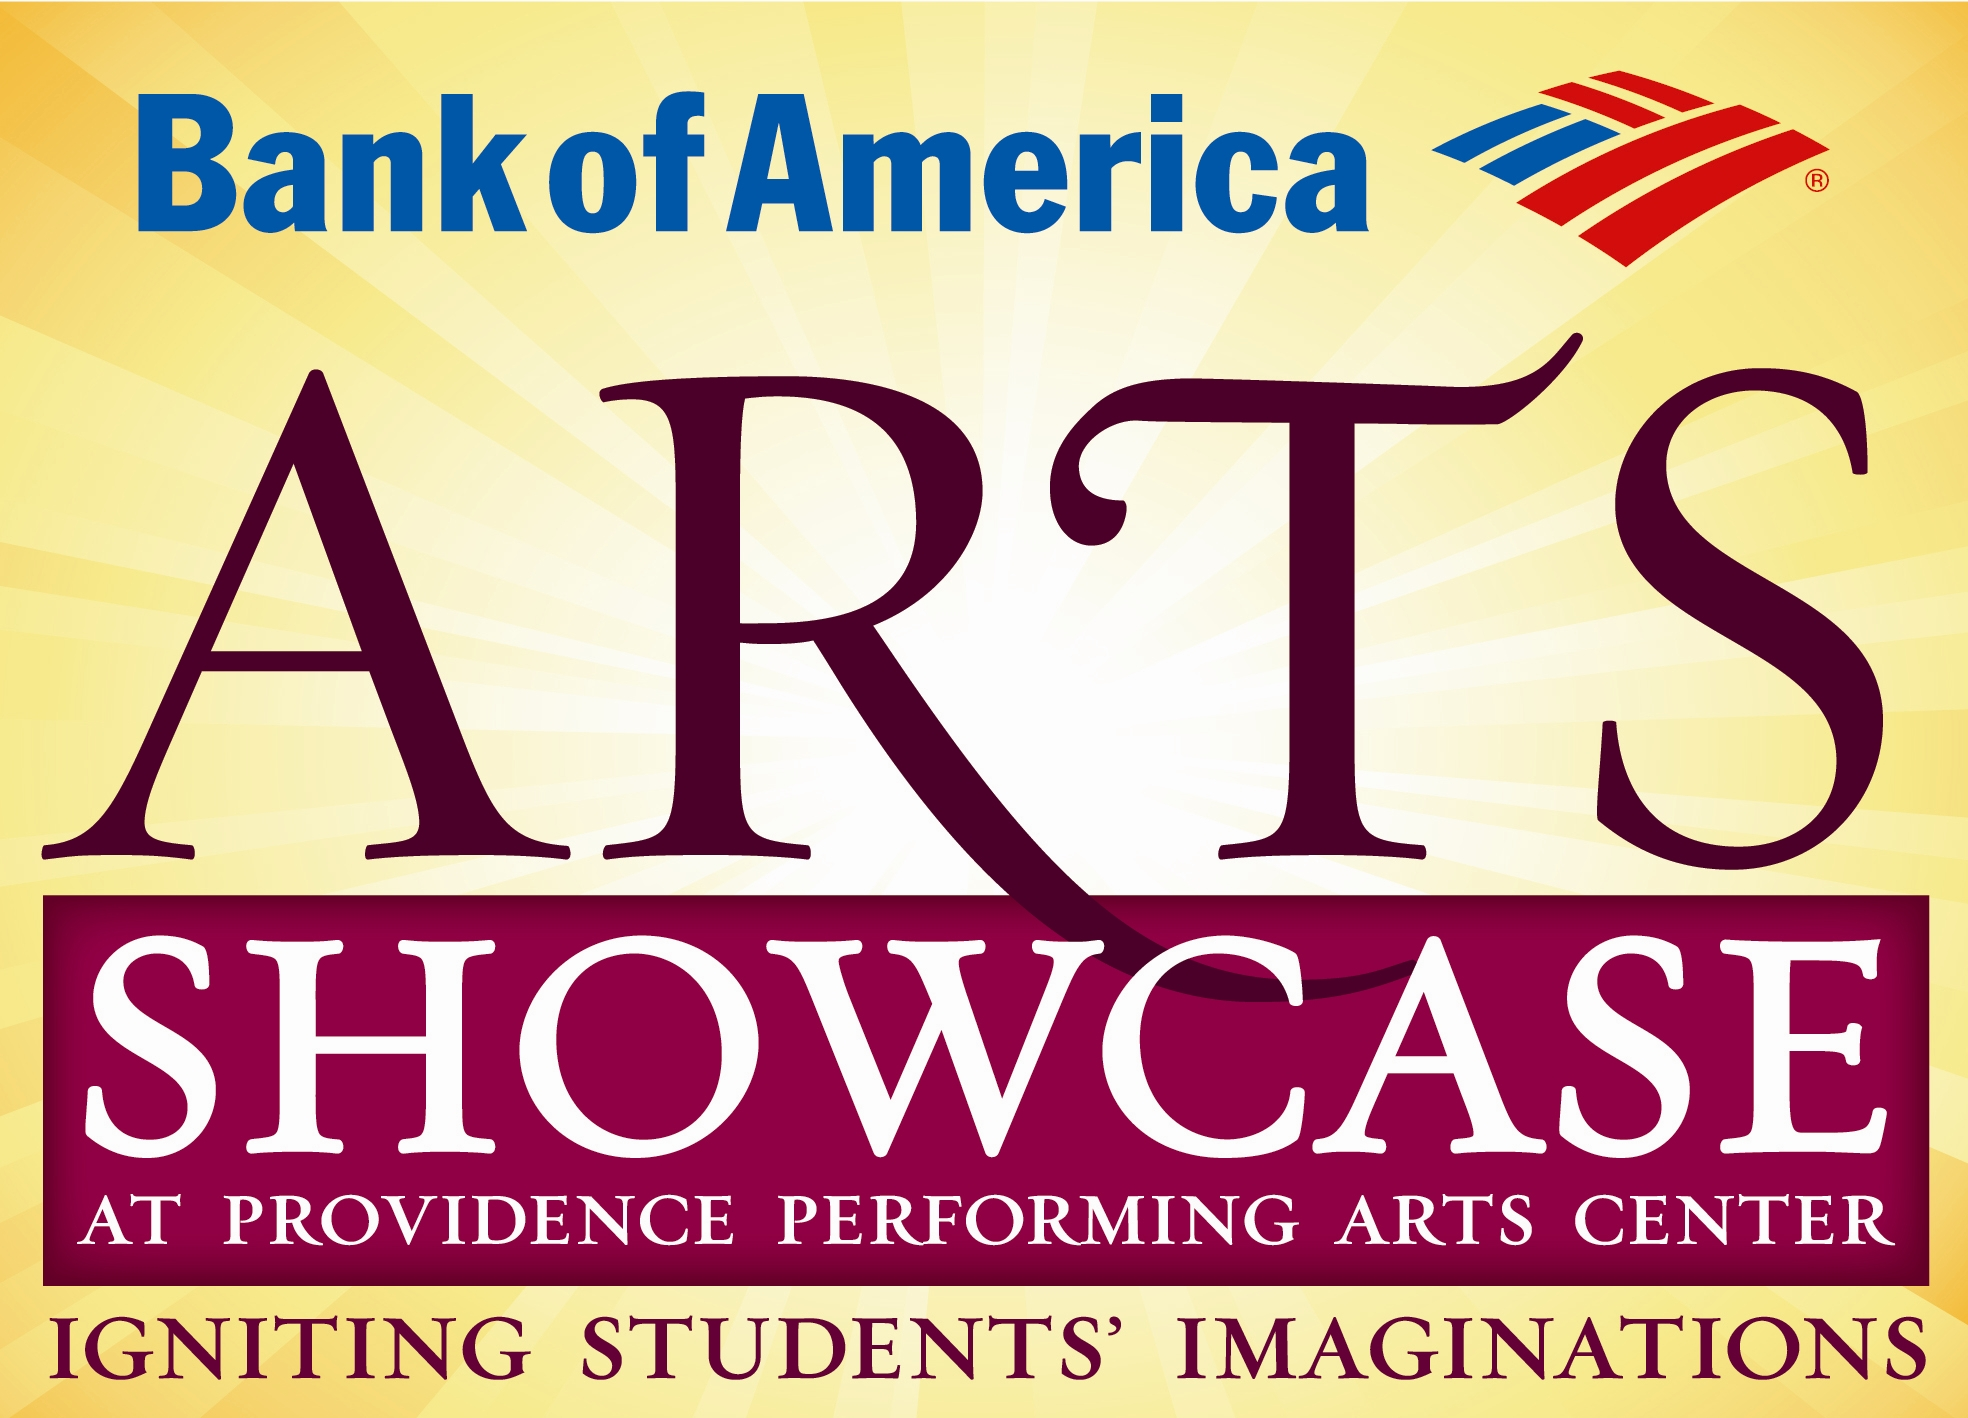 Bank of America Arts Showcase at Providence Performing Arts Center. Igniting Students' Imaginations.